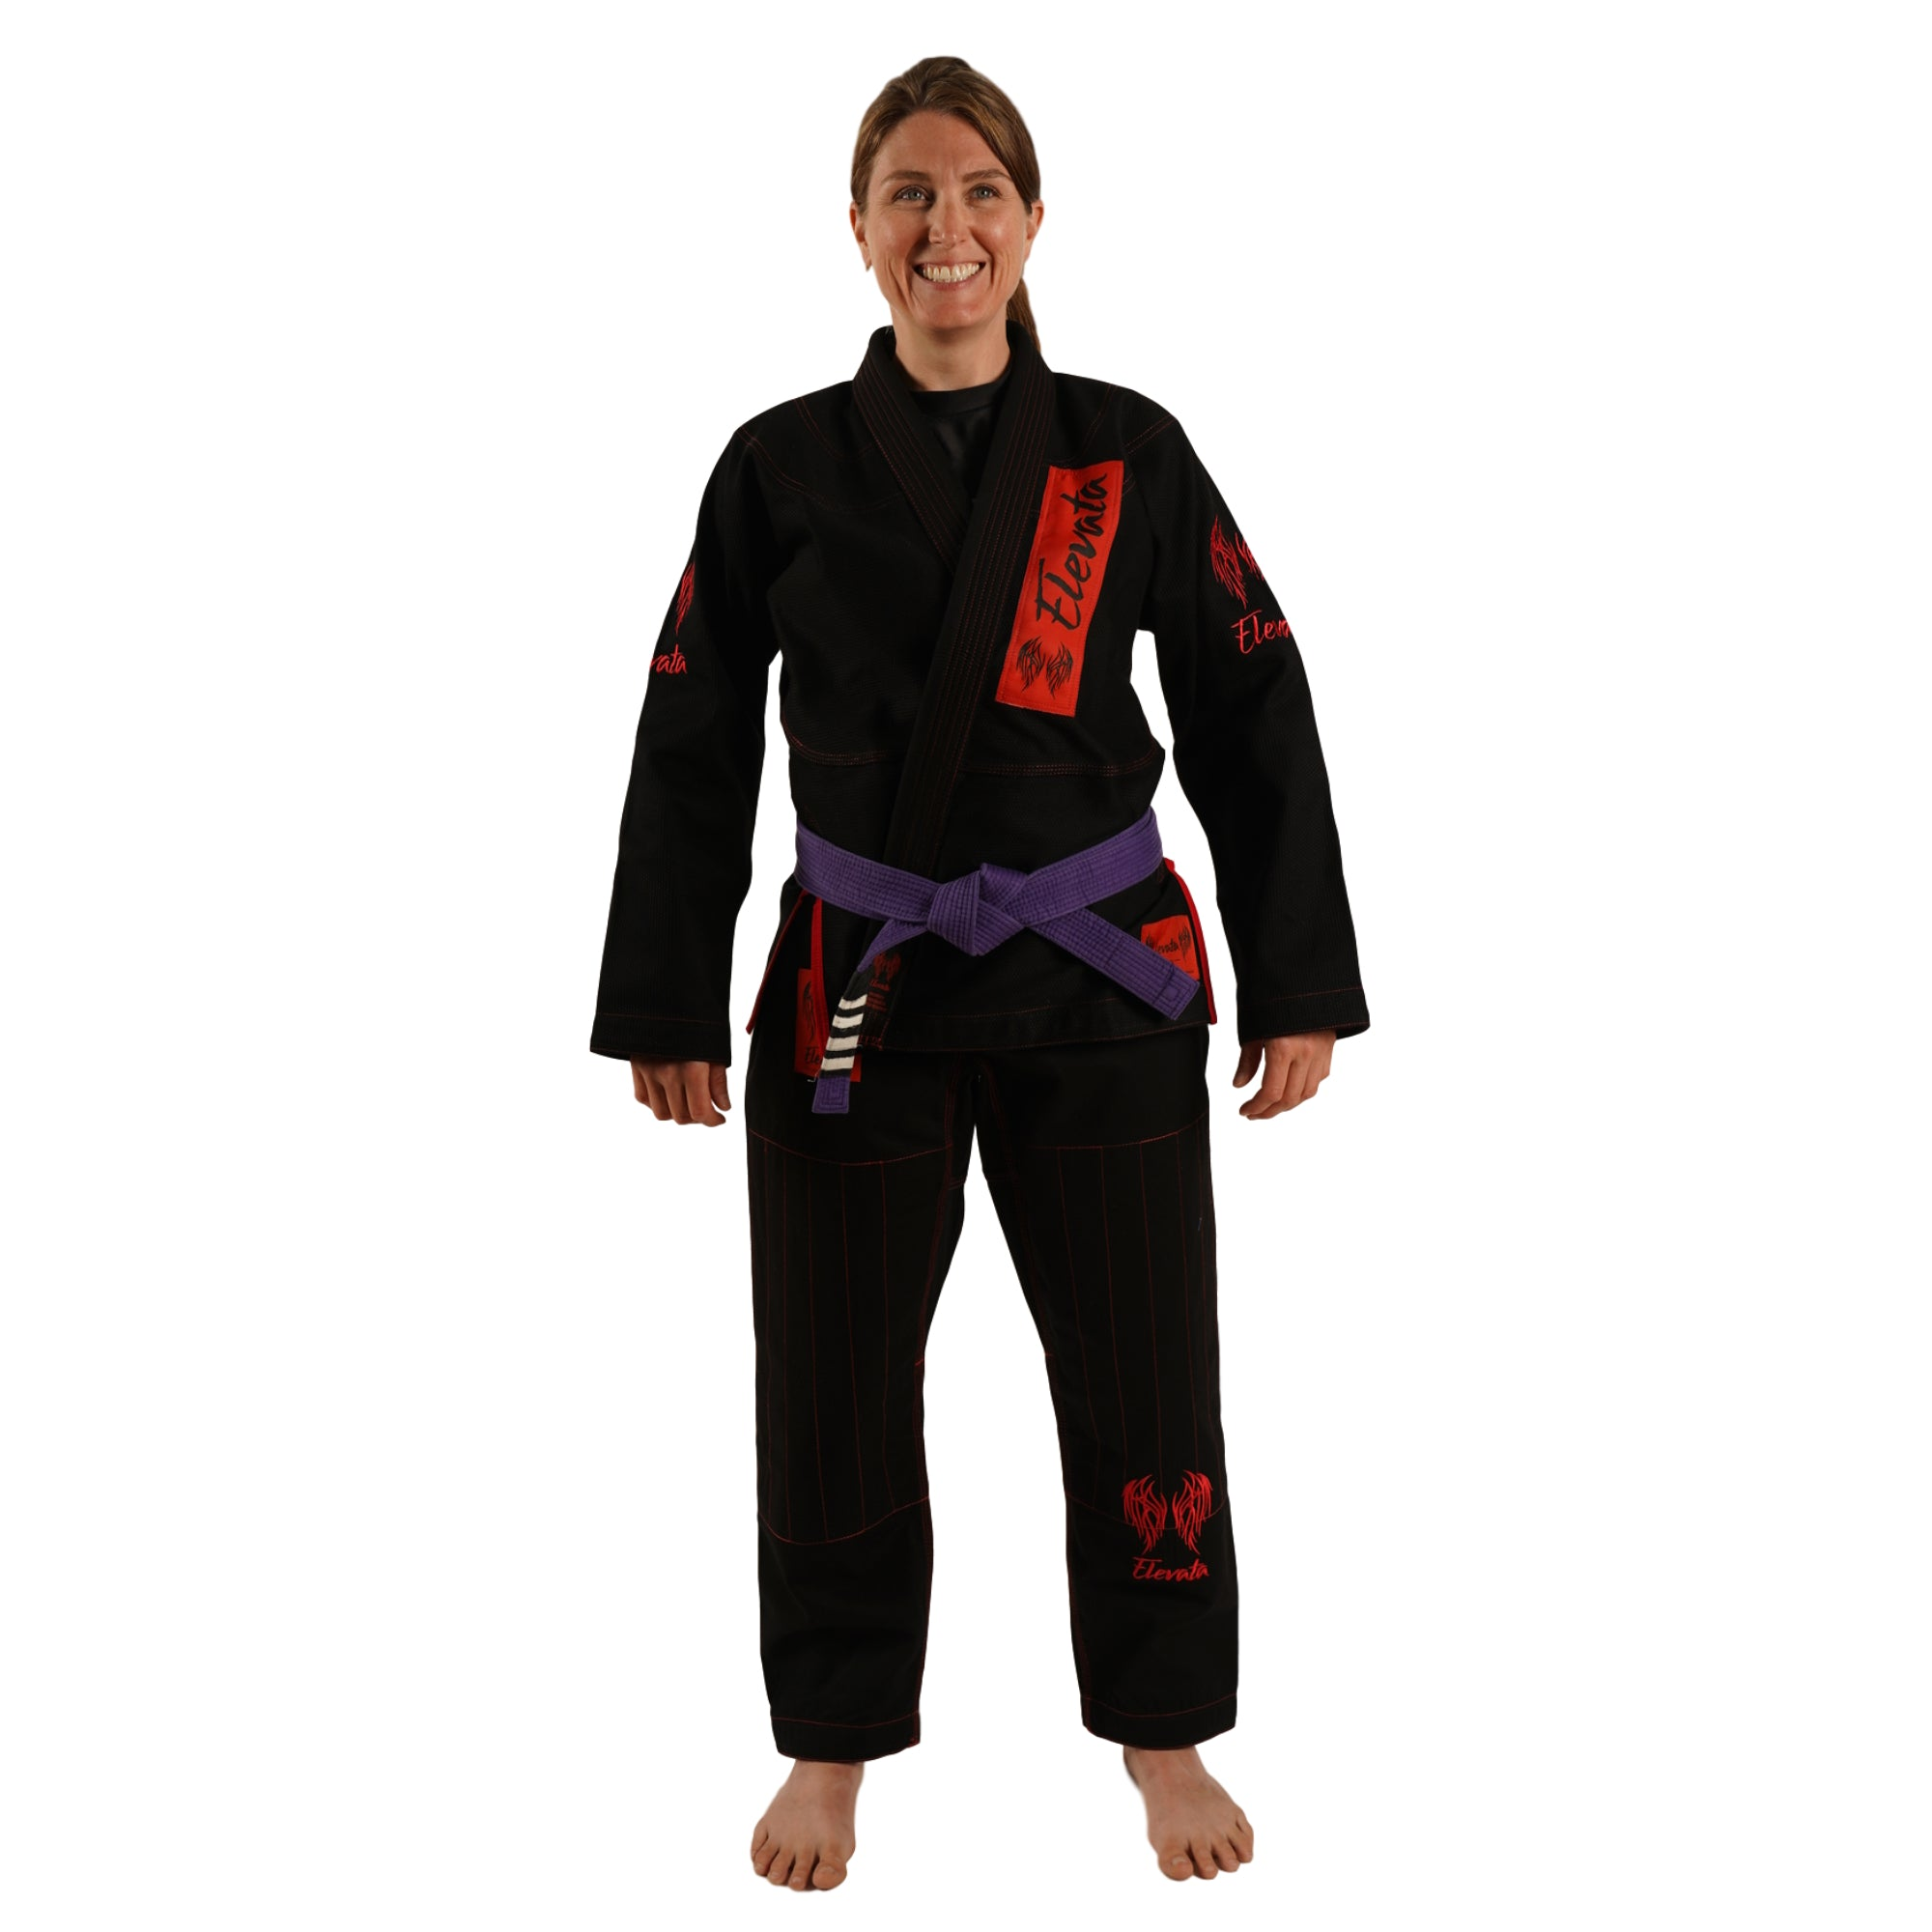 V1 - The Original Black Elevata Gi - Adult